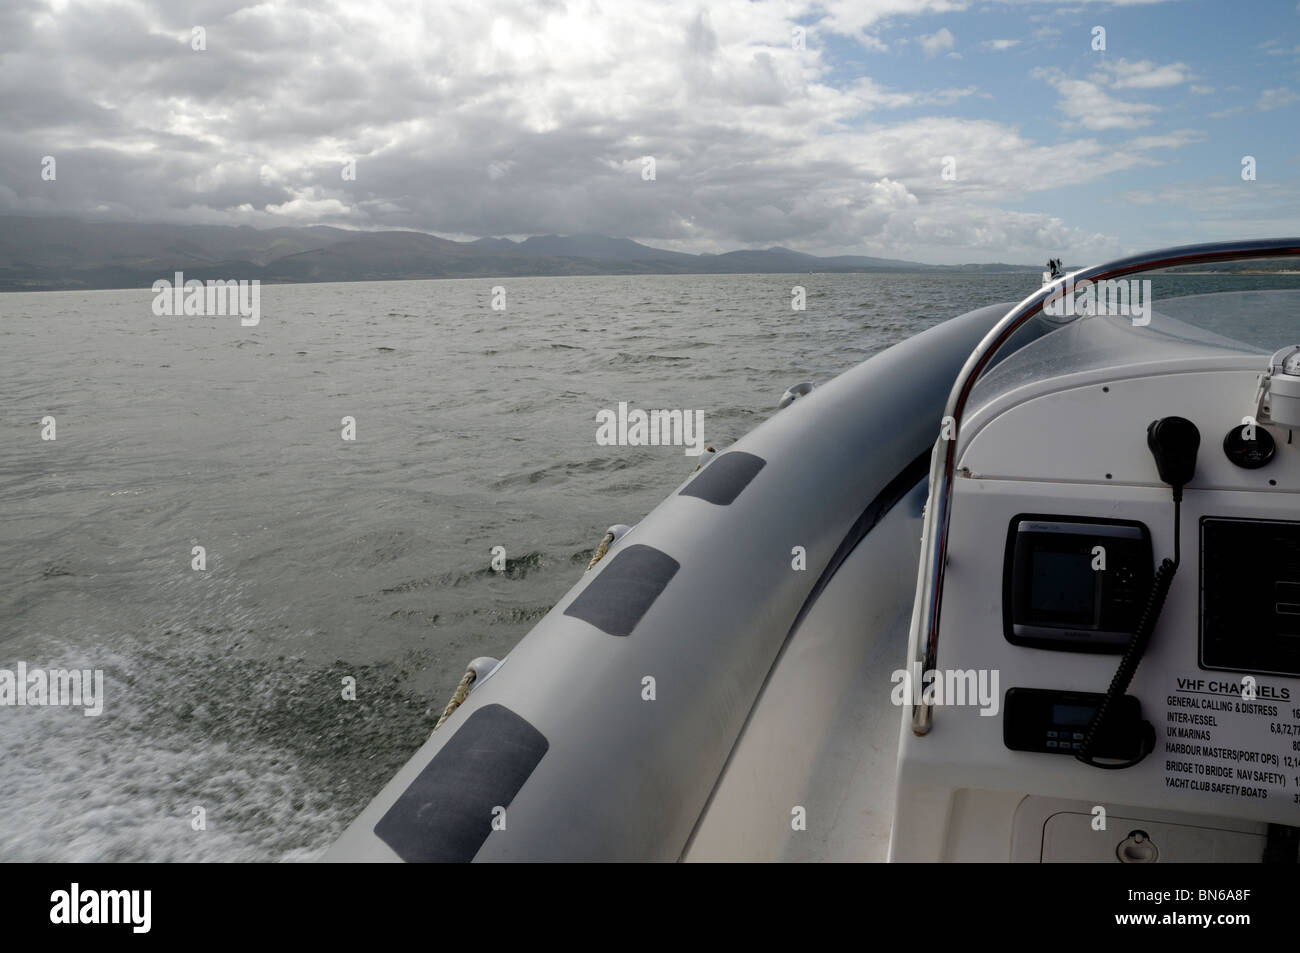 Inflatable rib boat detail - Stock Image